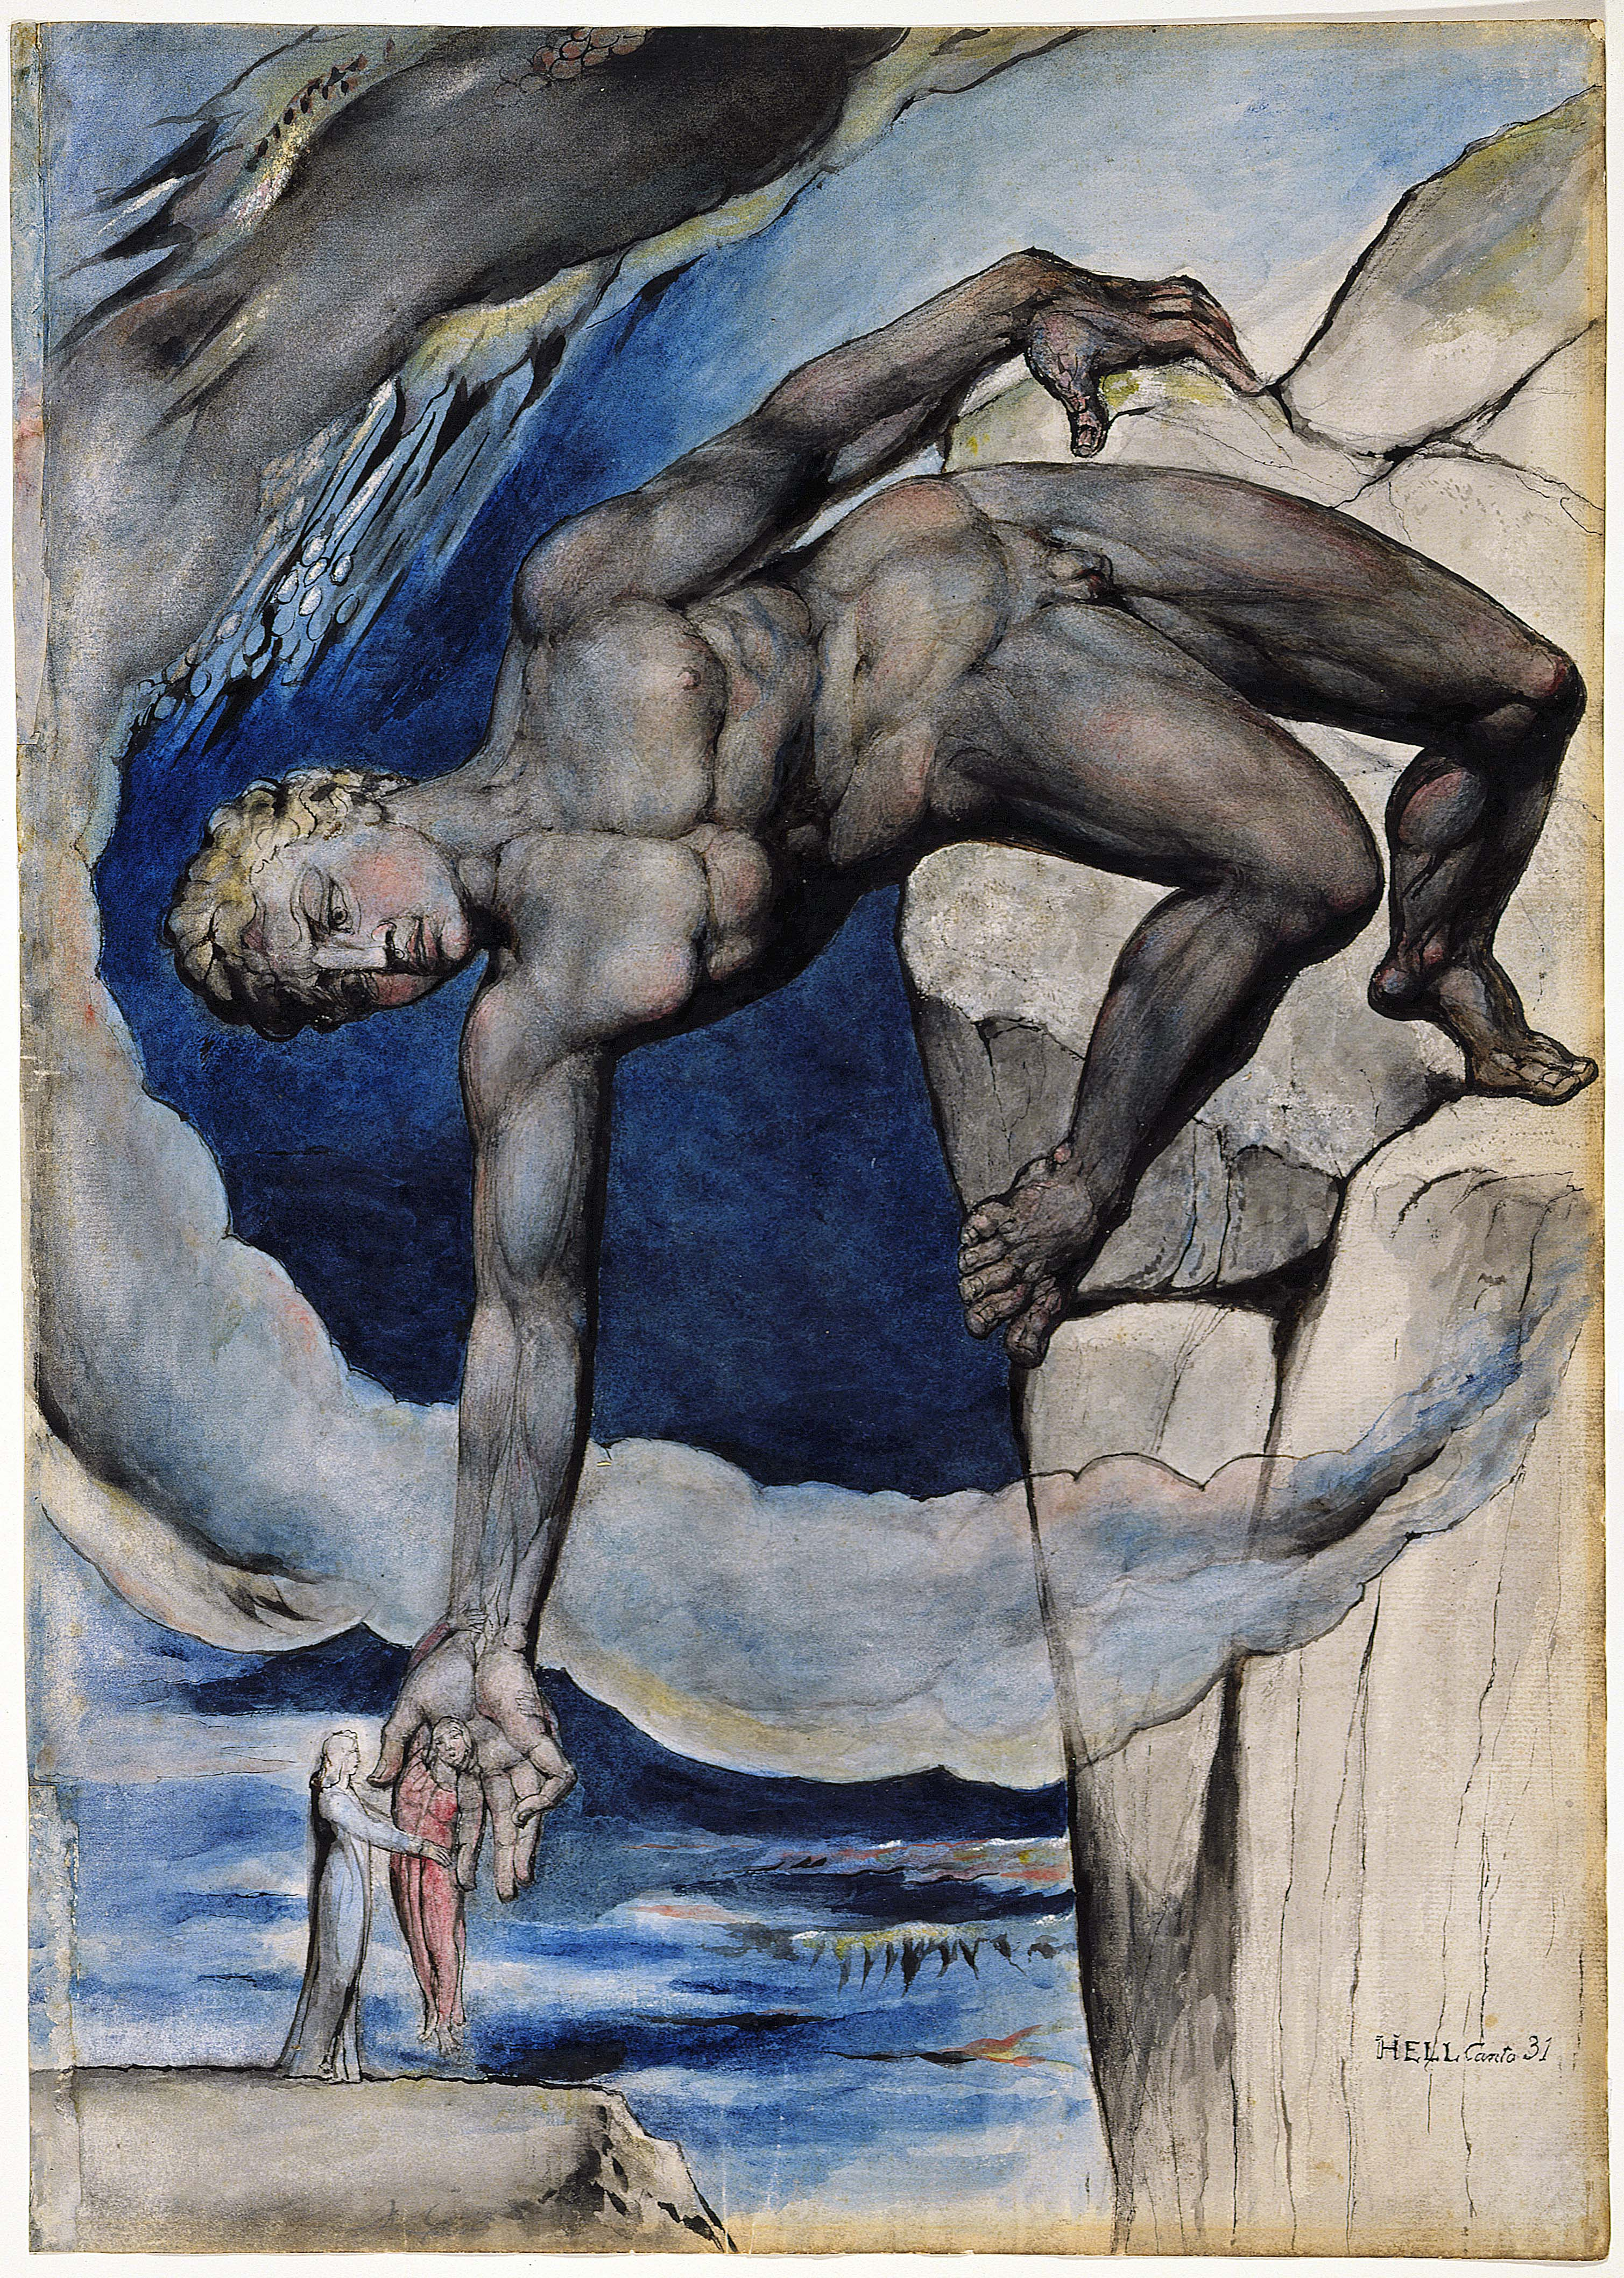 Figure 11 - William Blake, Anteu deposita Dante e Virgílio no último círculo do inferno